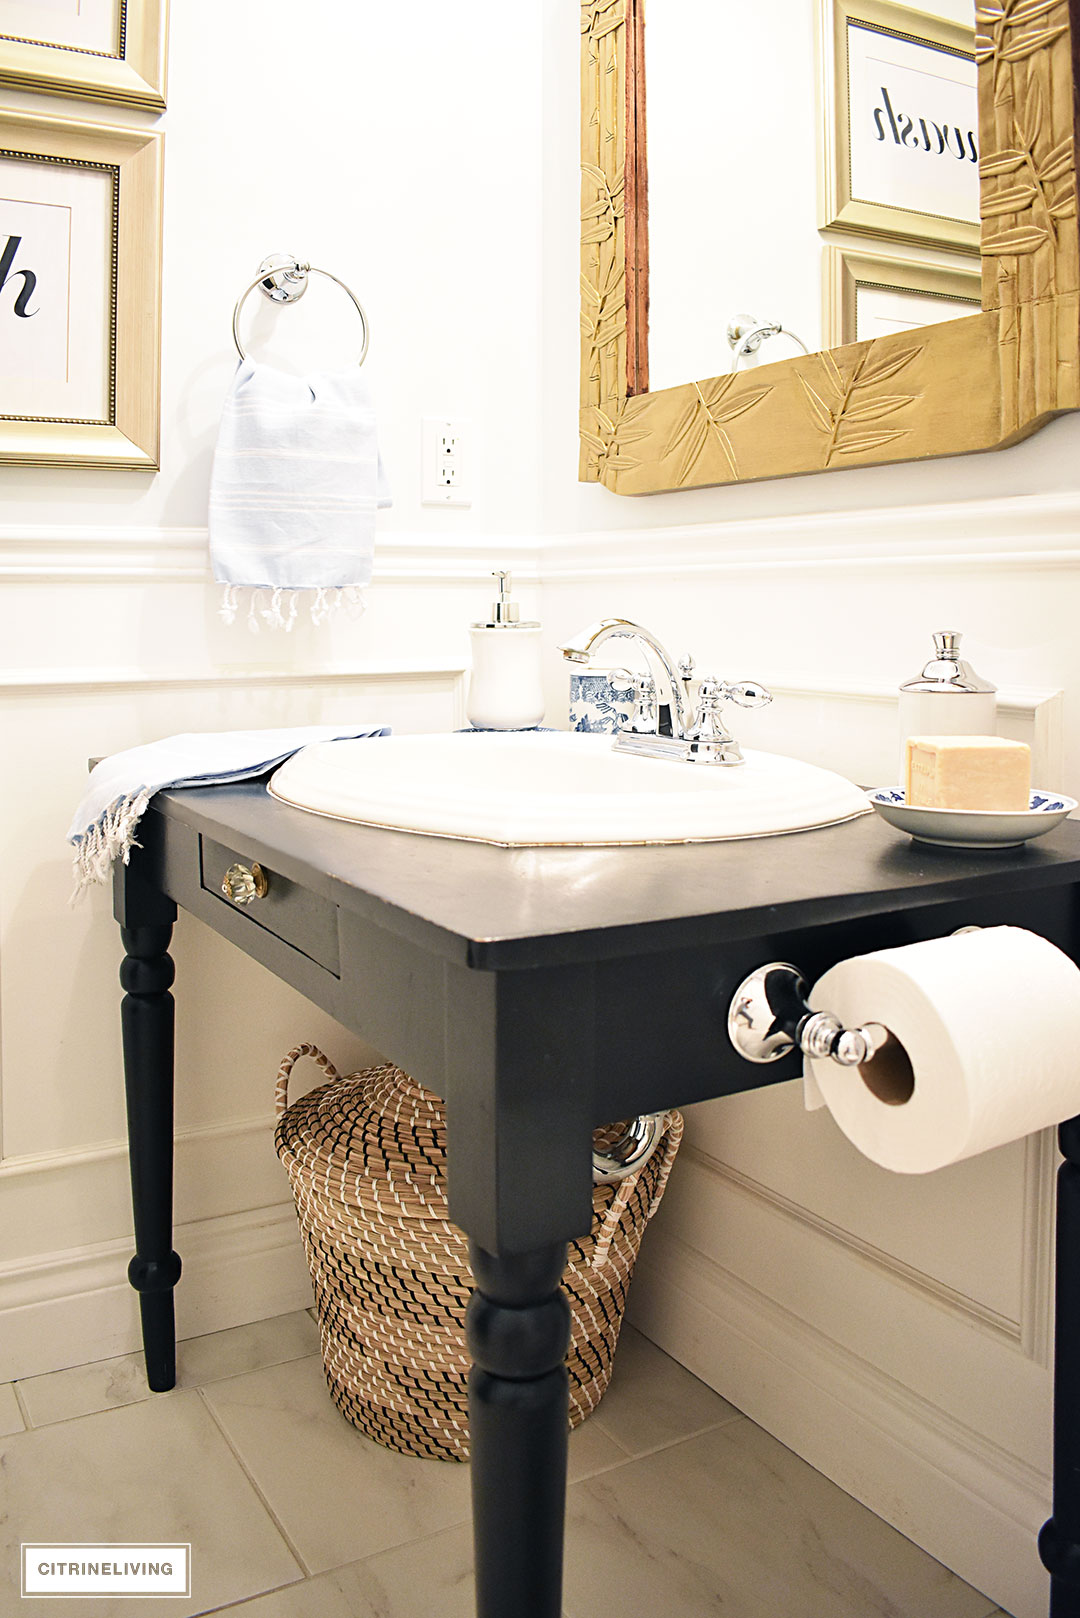 Small bathroom with white wainscotting, light blue walls, black vanity and gold accents.